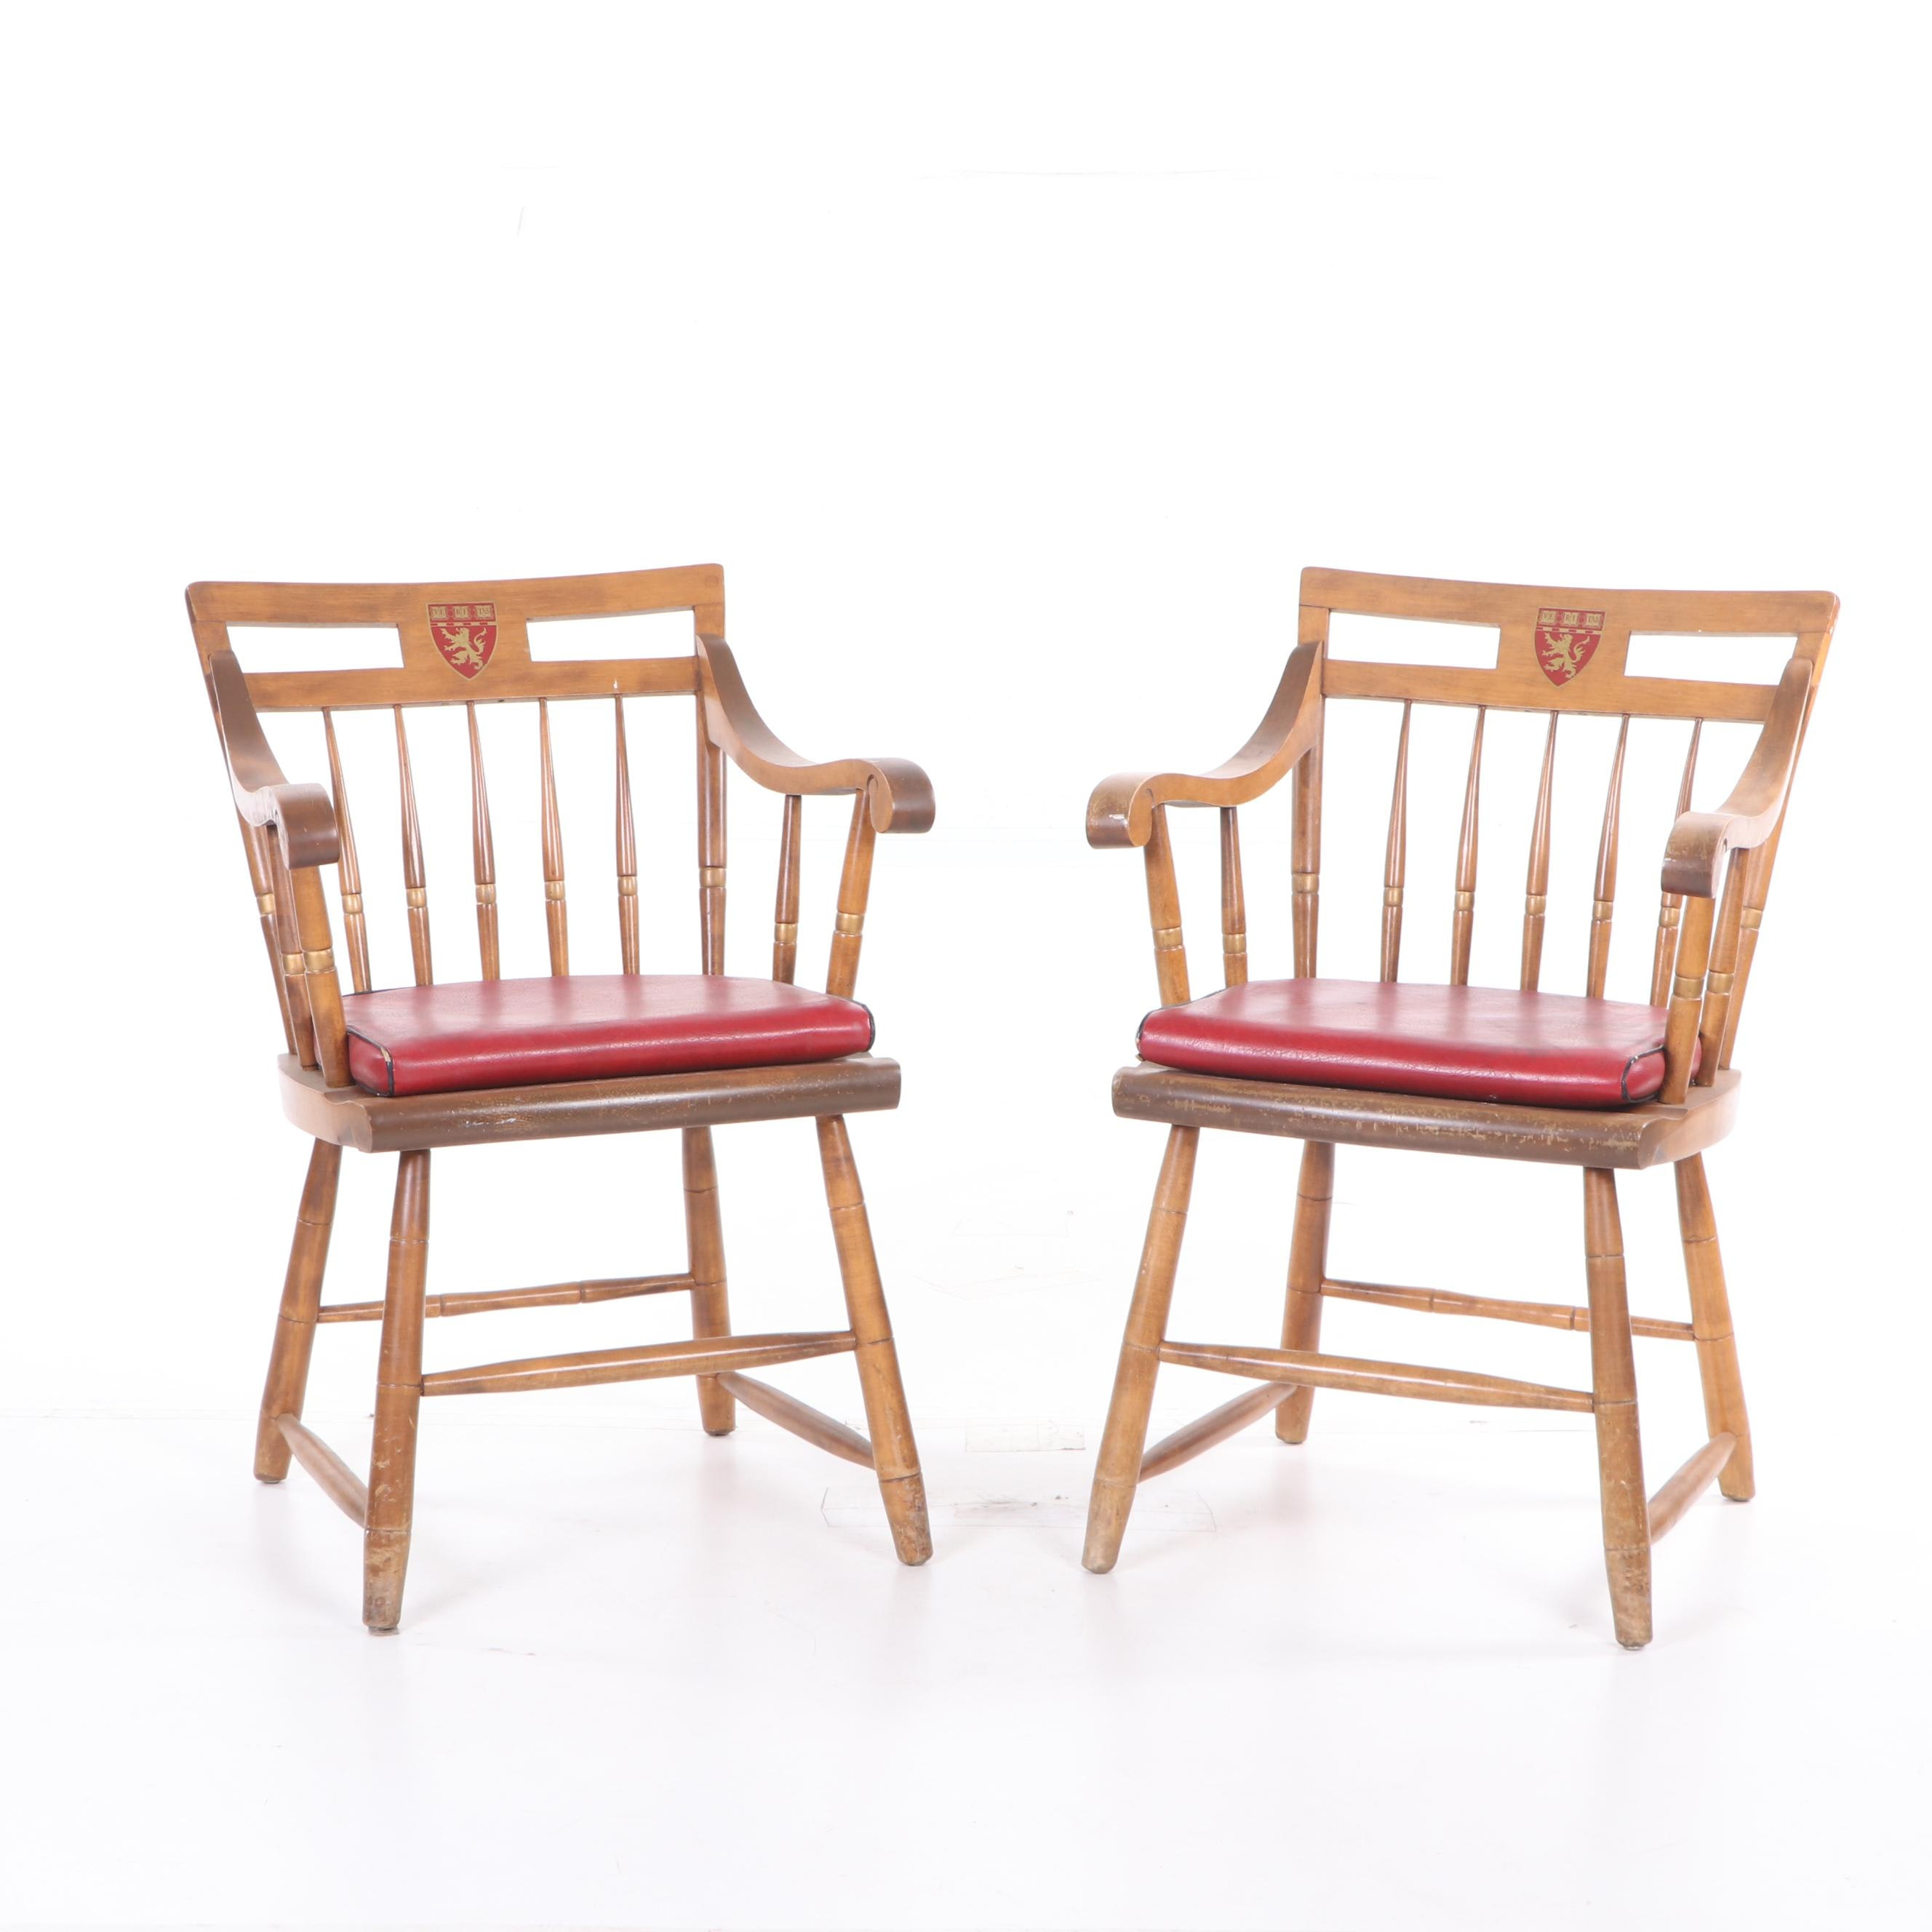 Nichols & Stone Harvard Windsor Style Maple Armchairs, Mid 20th Century